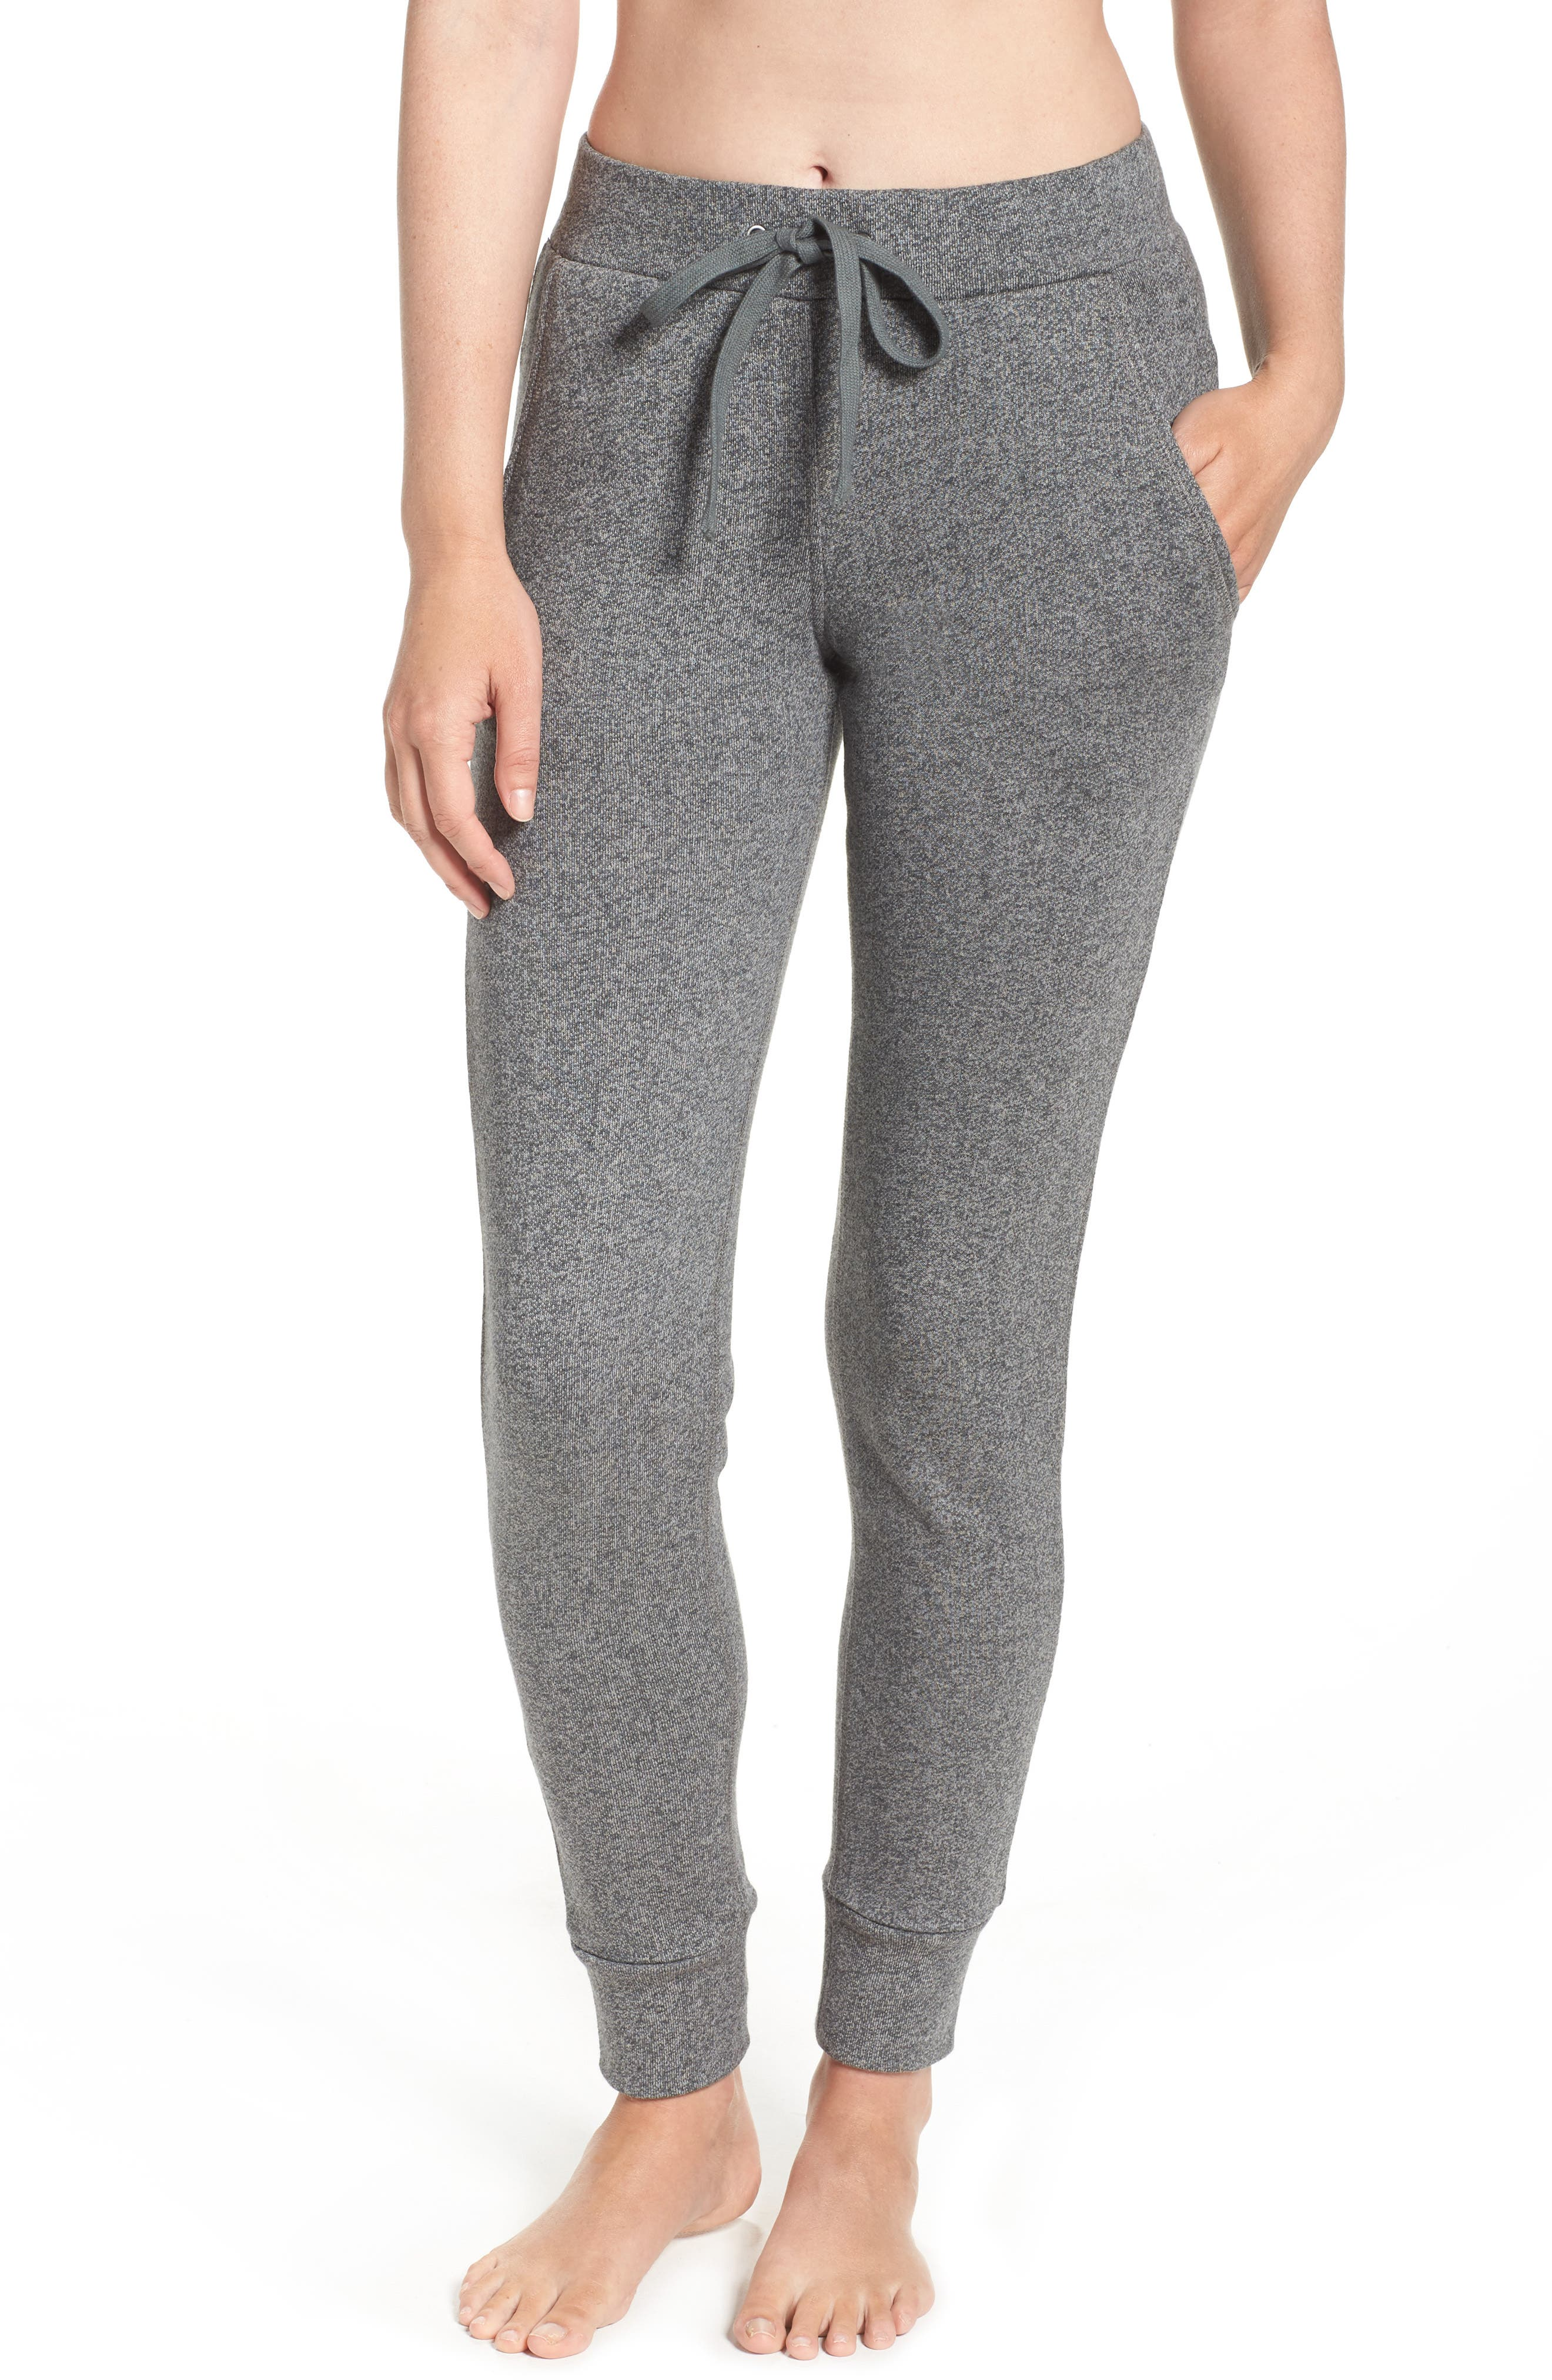 Clementine Terrry Sweatpants,                             Main thumbnail 1, color,                             Charcoal Heather